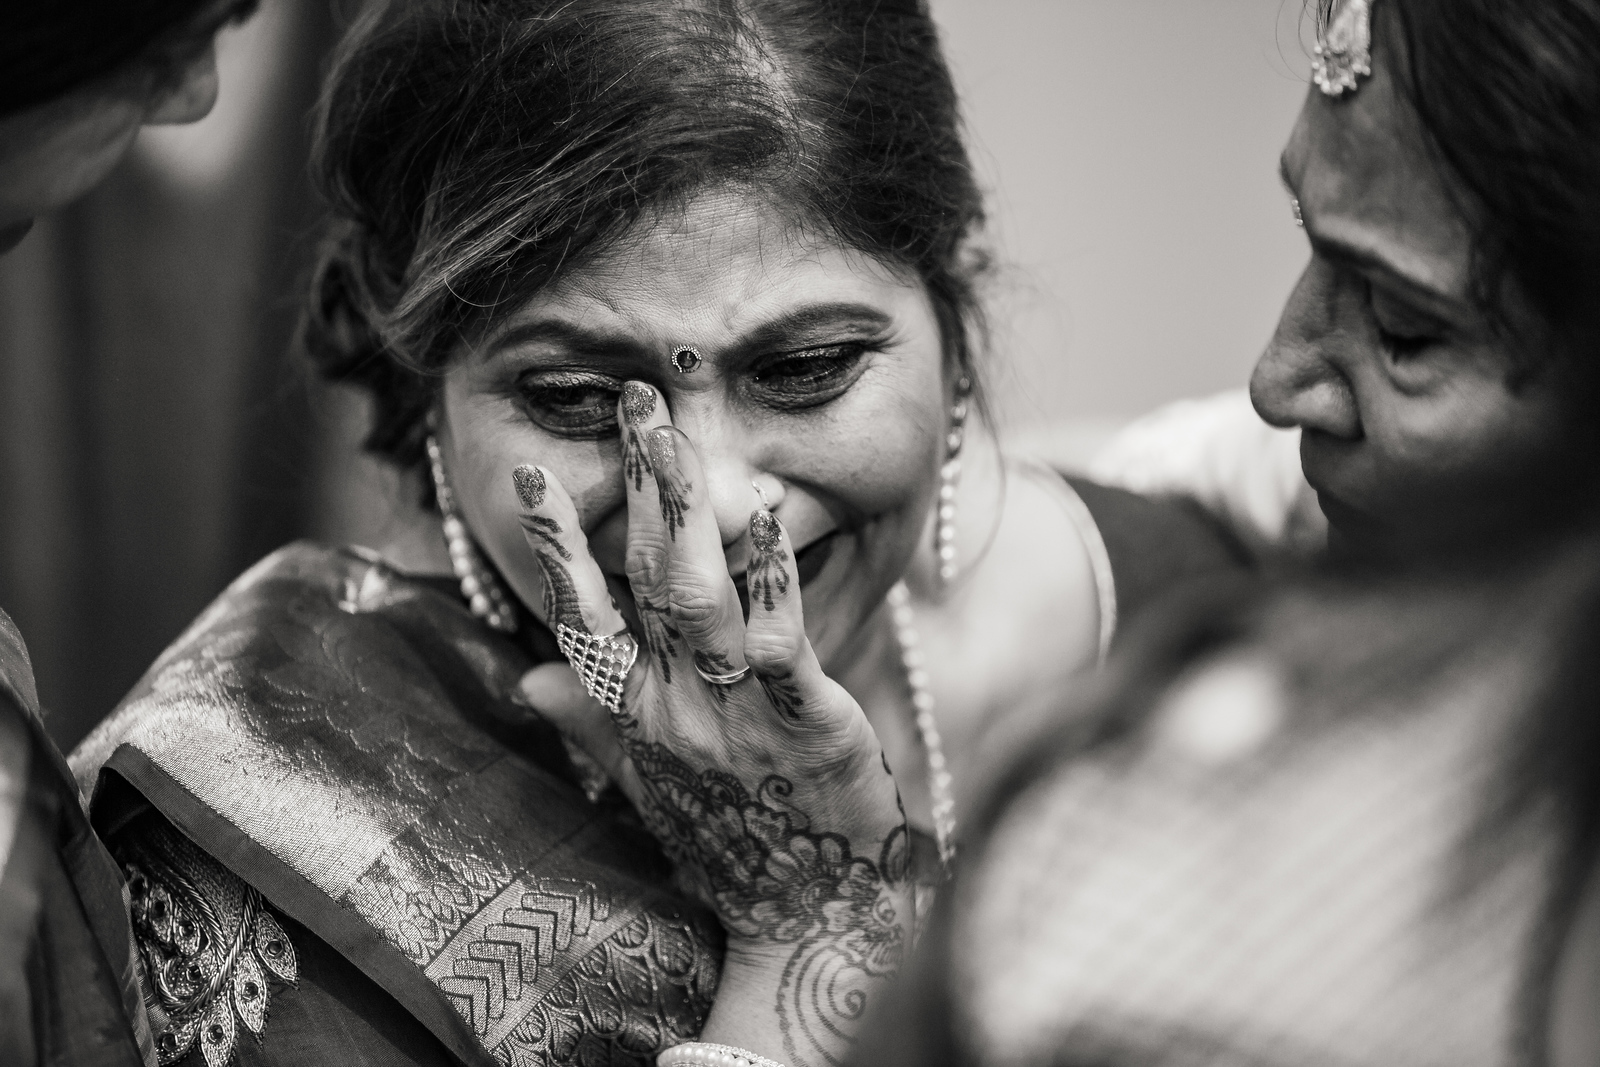 Emotional moment at Hindu wedding